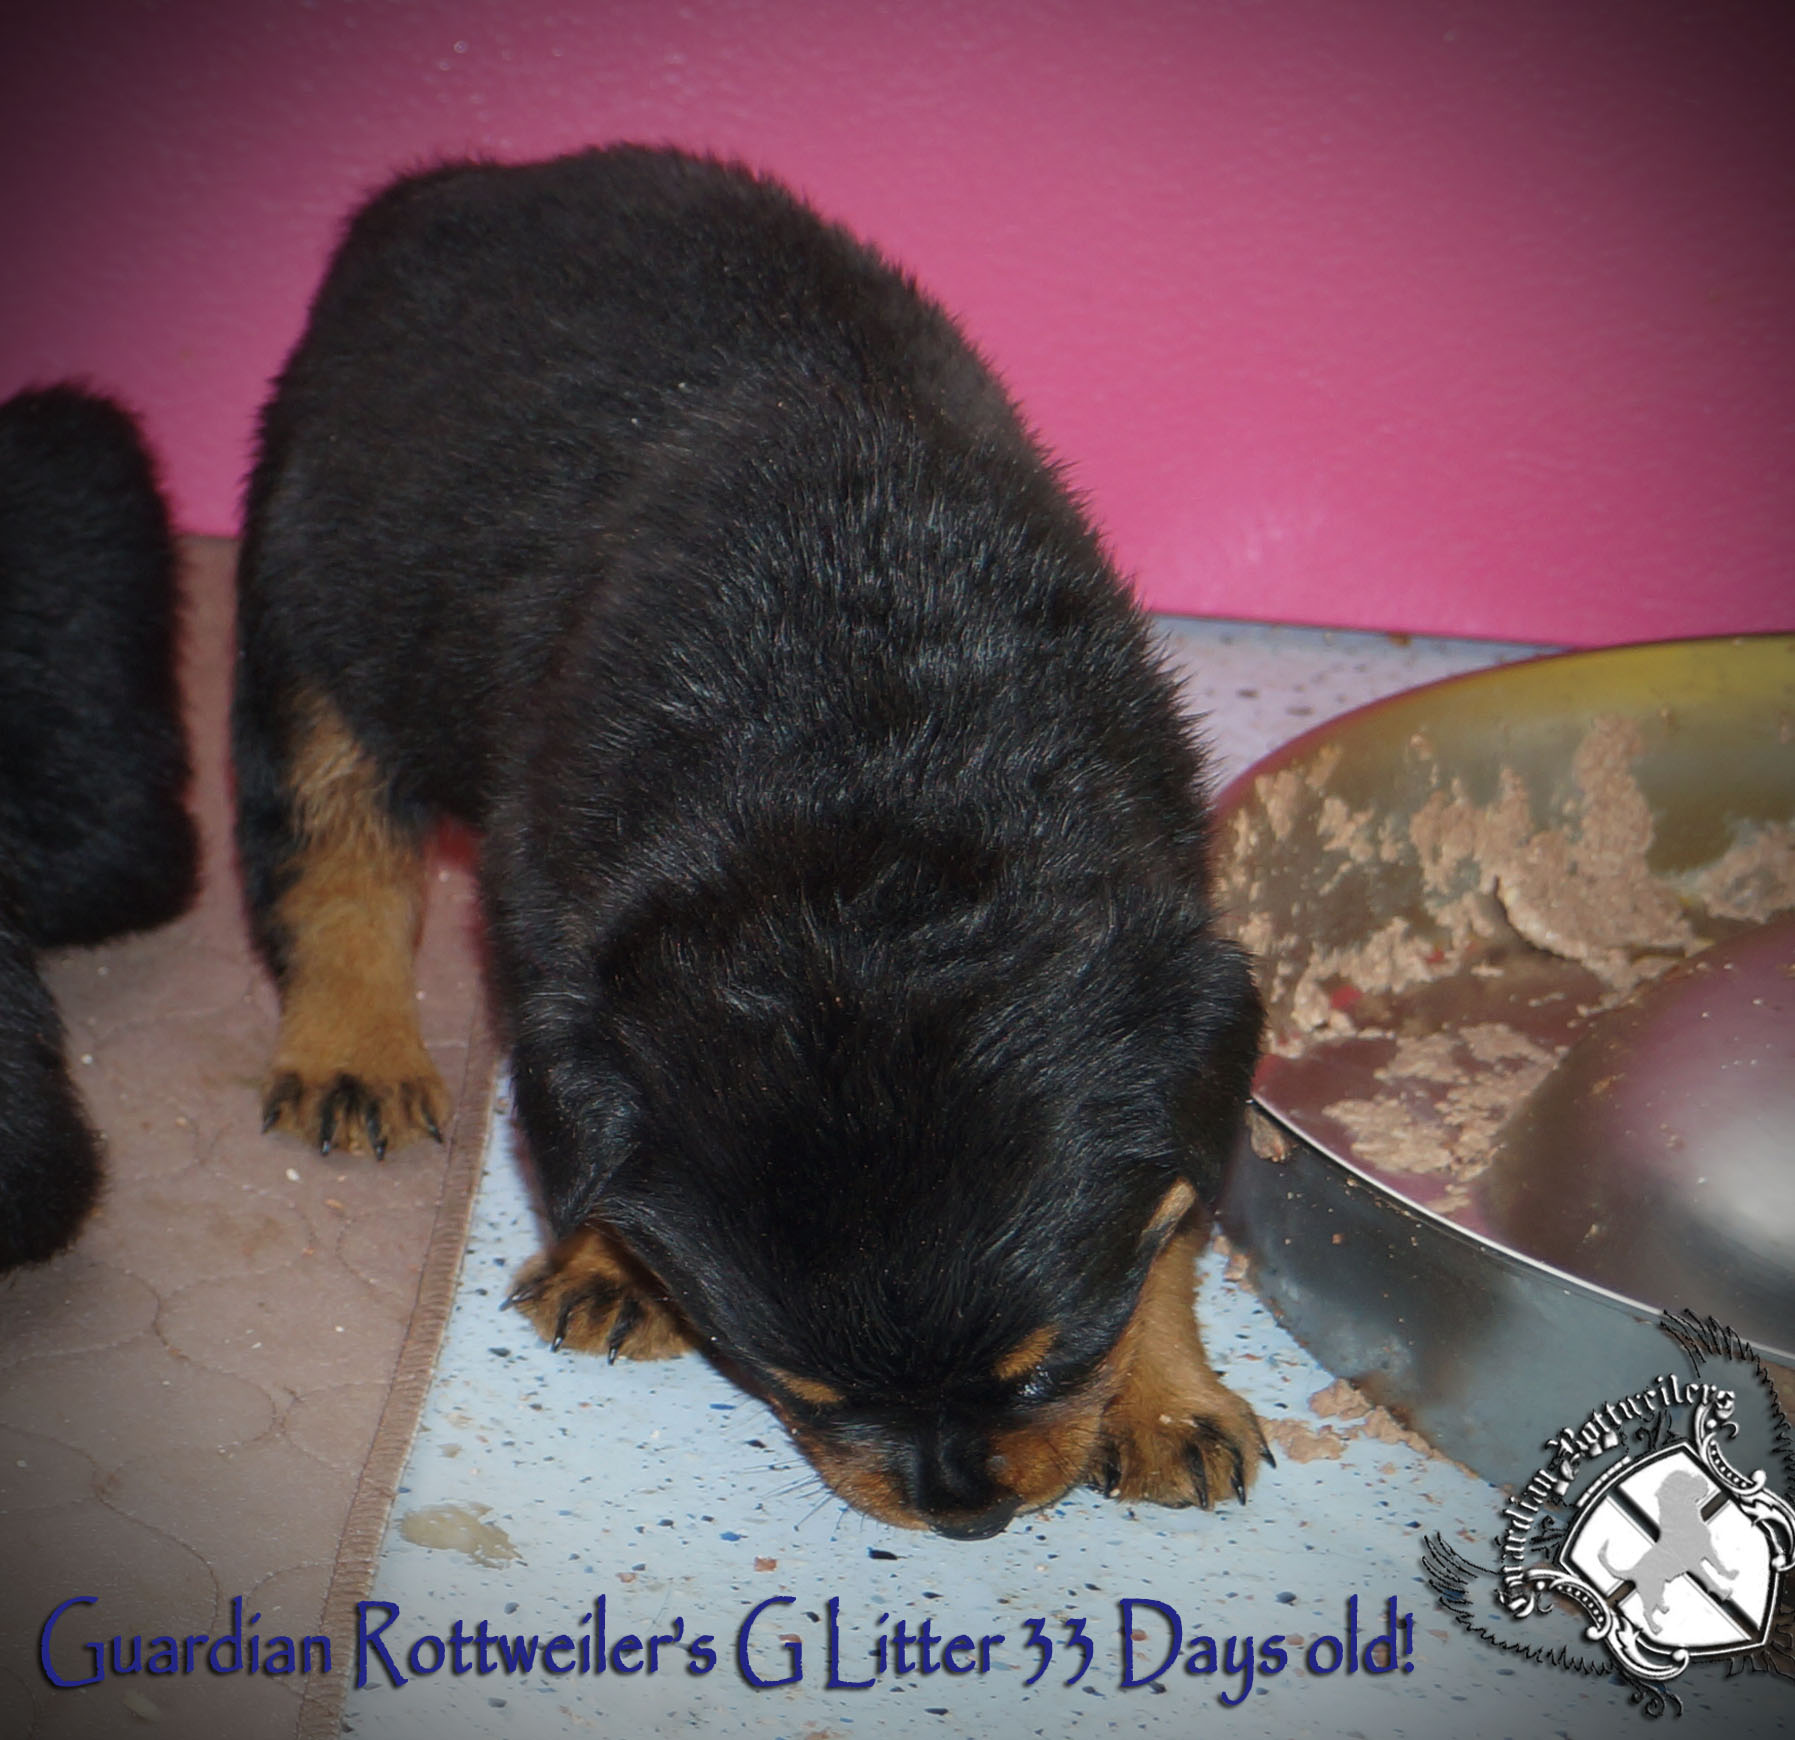 Best Rottweiler Chubby Adorable Dog - glitter33days  Image_19649  .jpg